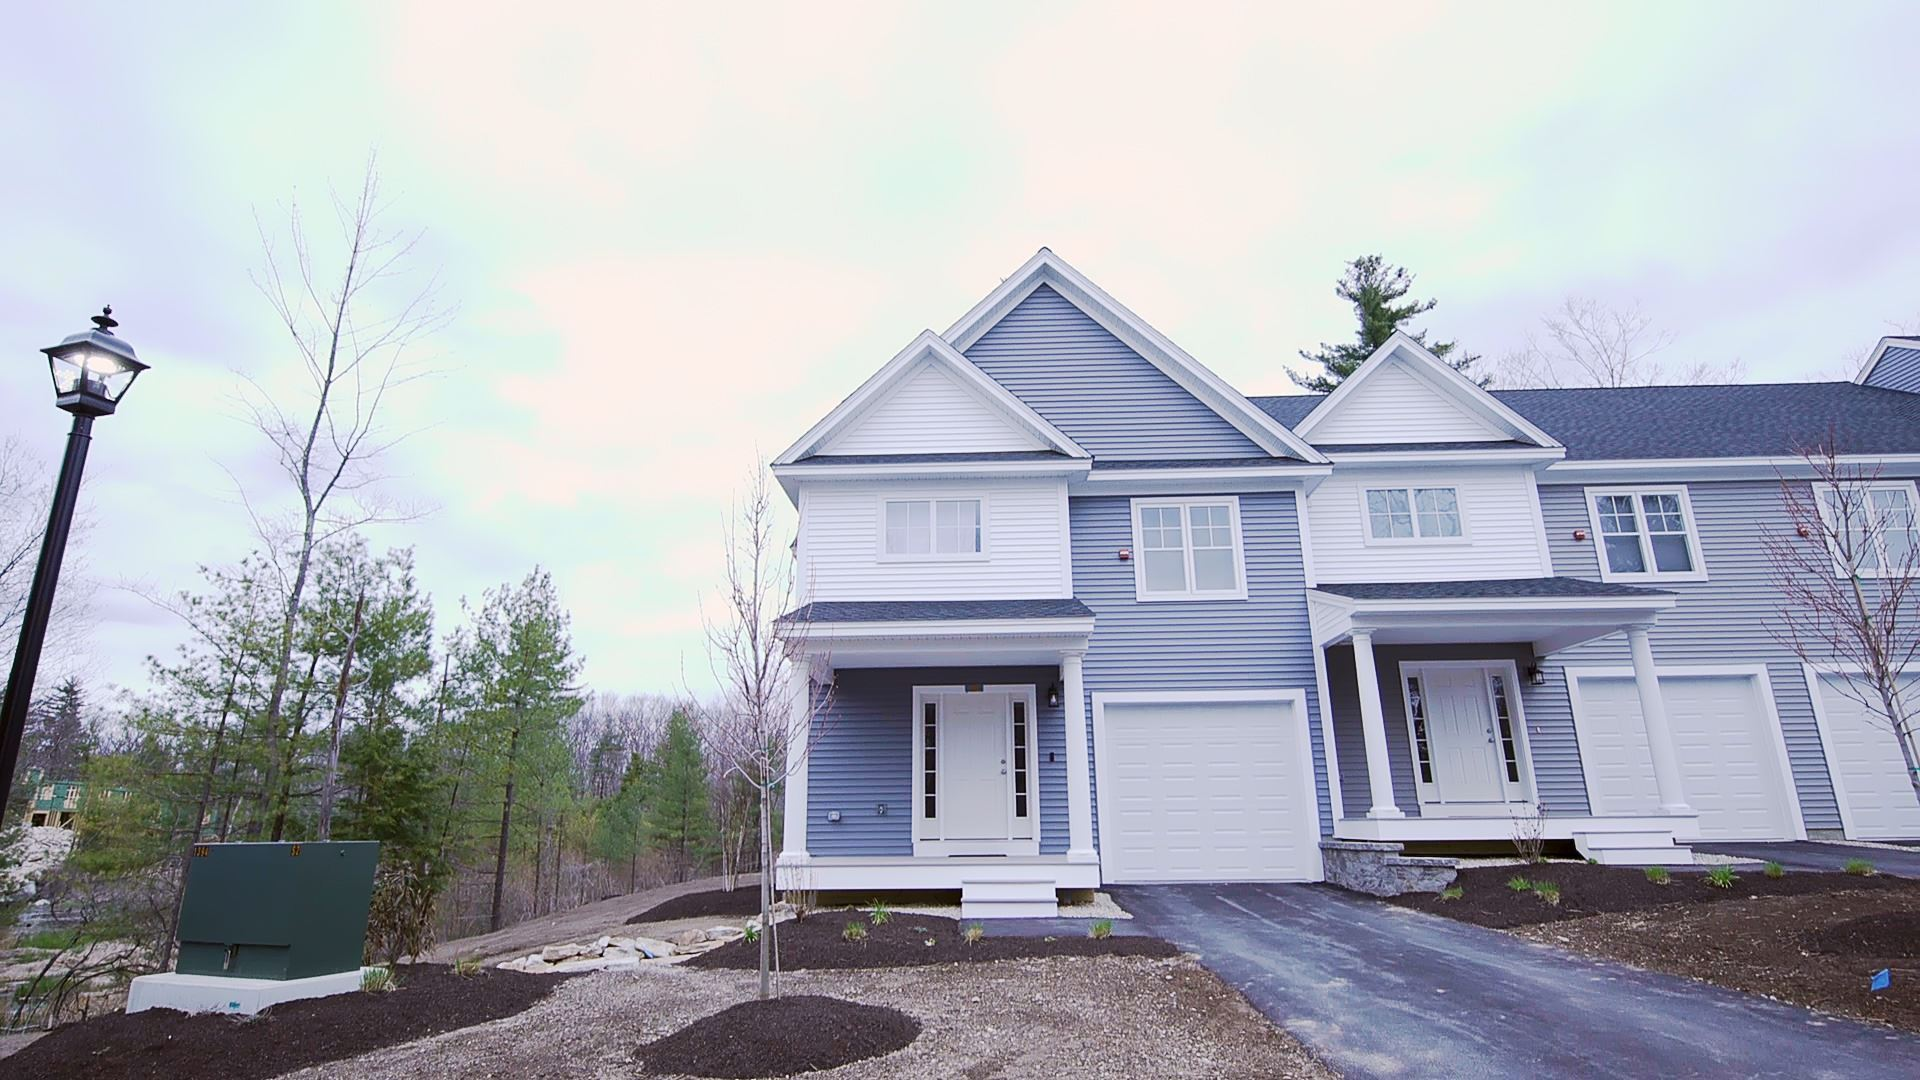 237 Knollwood Way, Manchester, NH 03102 - #: 4804919